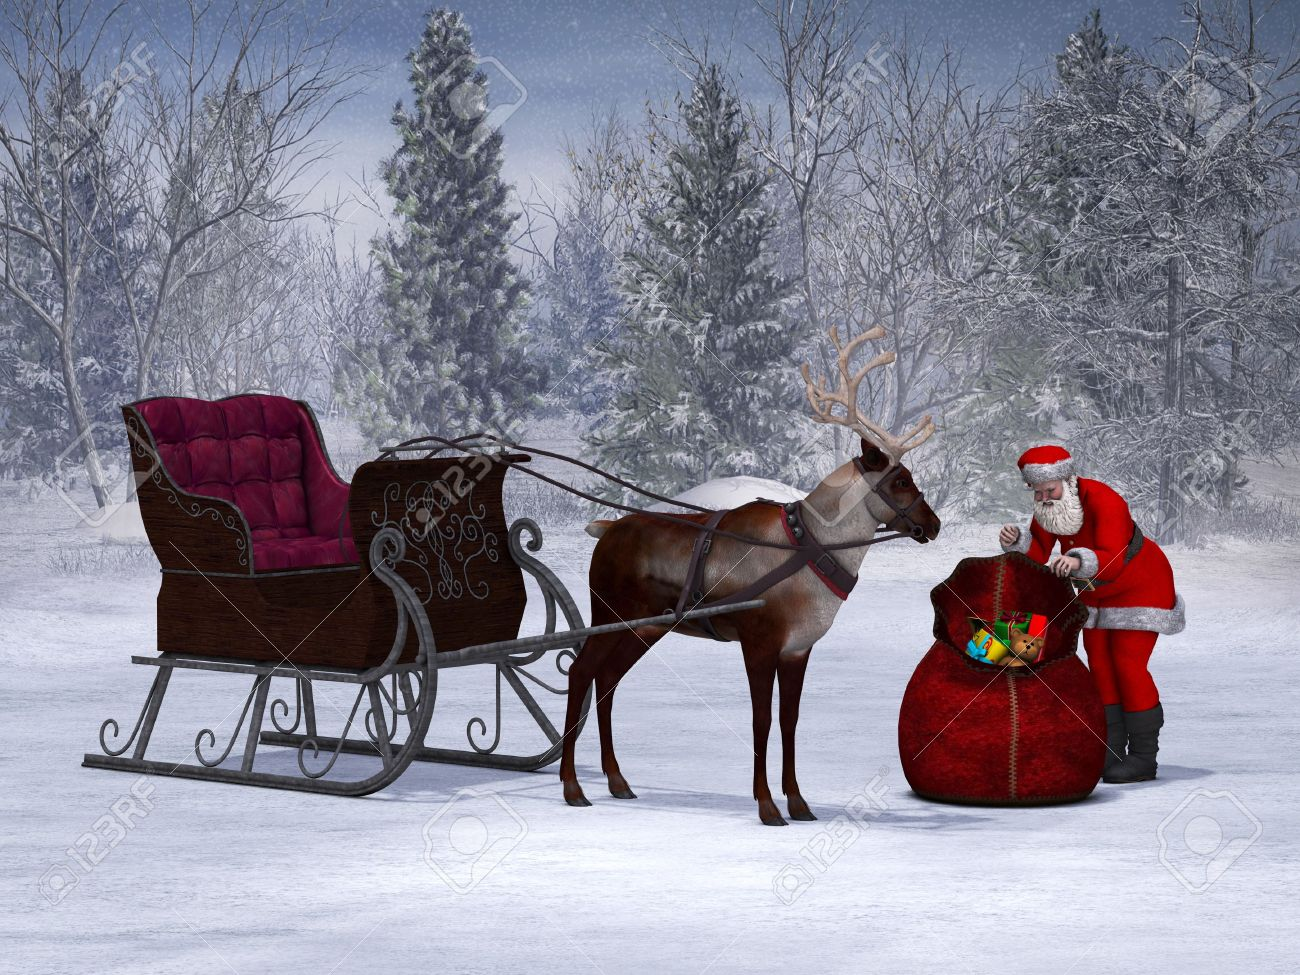 santa packing his sack with his sleigh and reindeer beside him